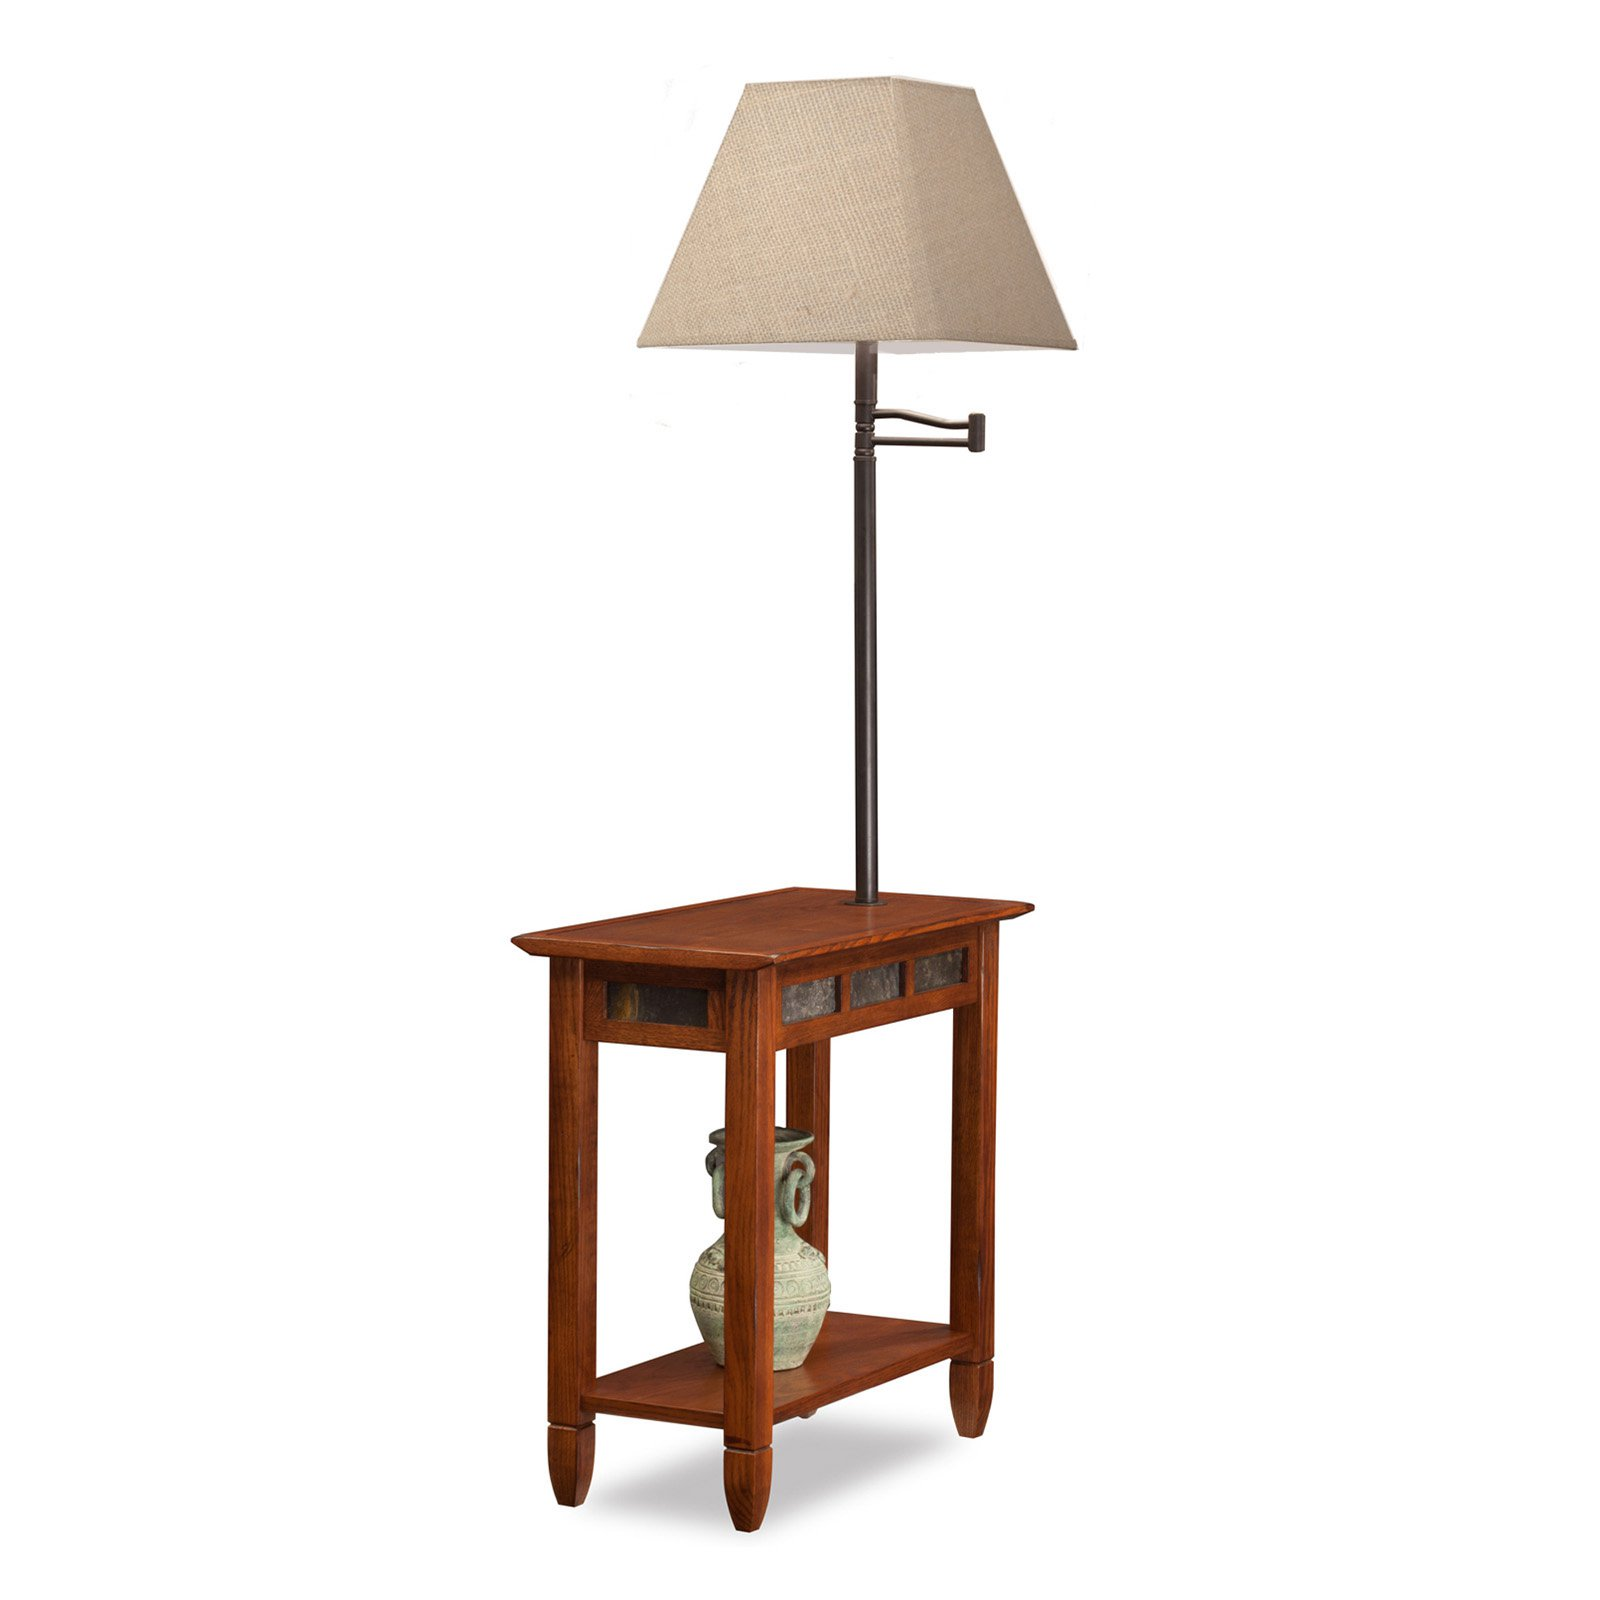 Leick Favorite Finds Slate Chairside Lamp End Table in Rustic by Leick Furniture